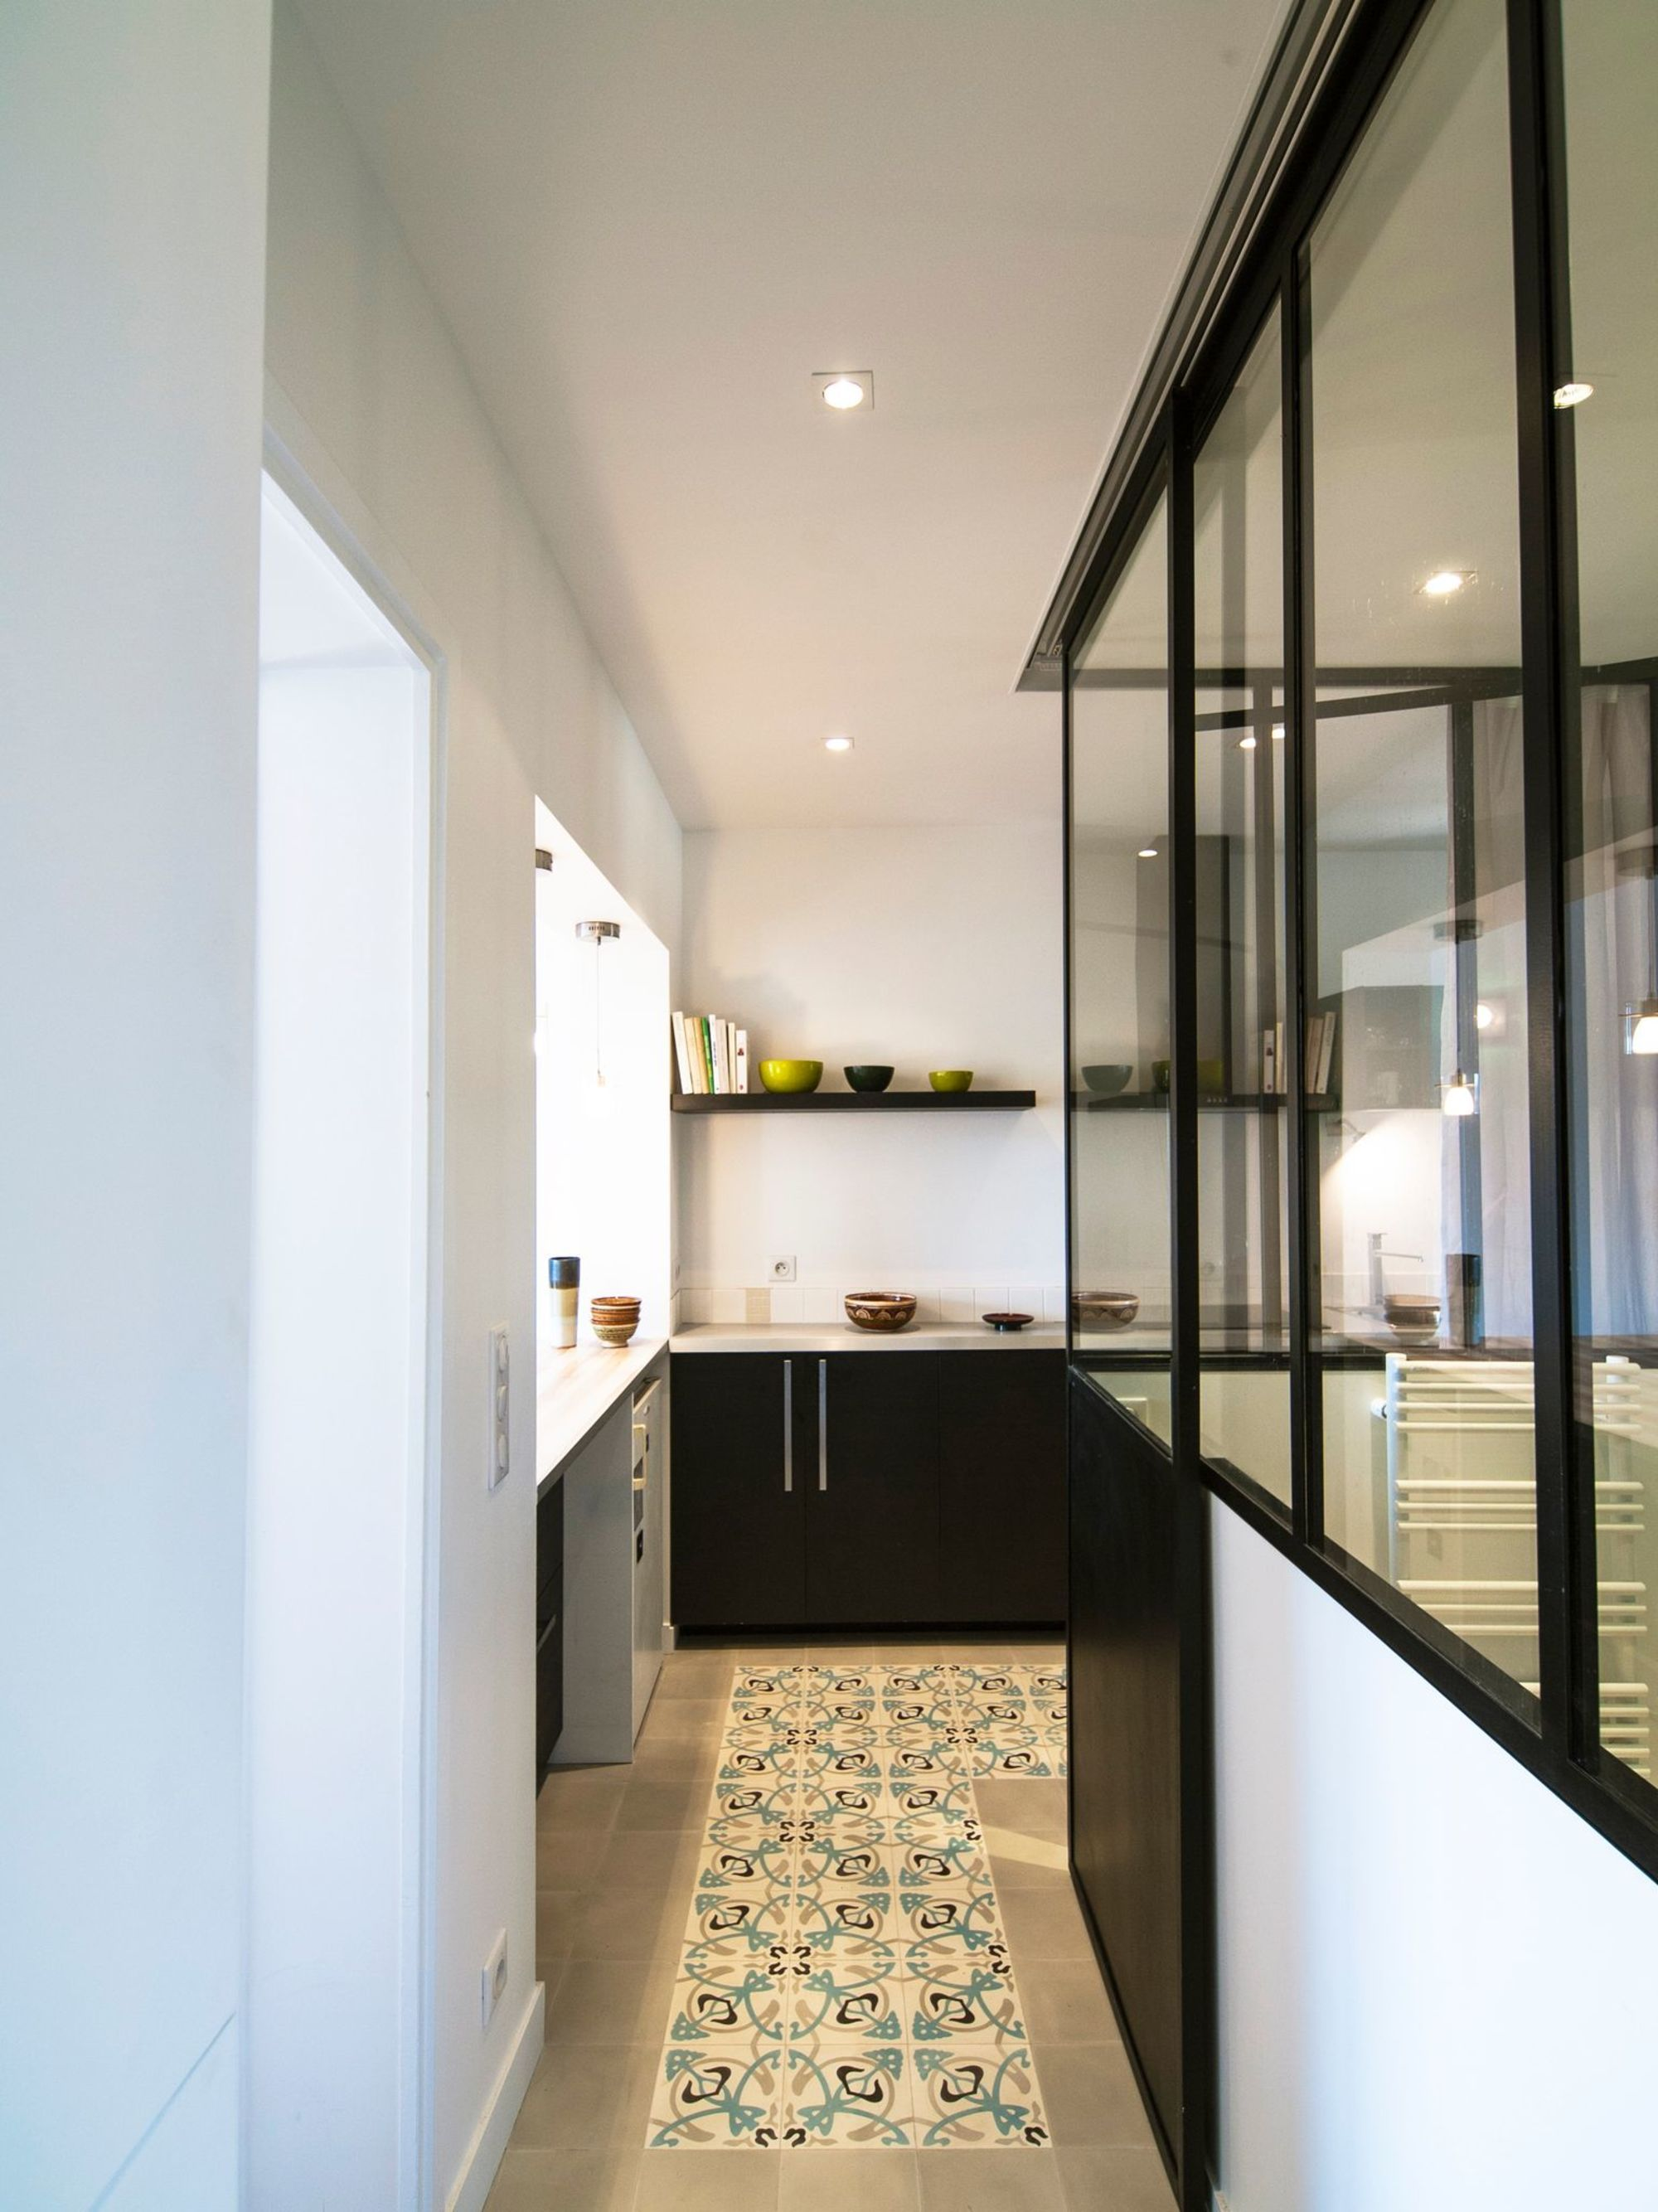 Verriere Cuisine Ikea ~ Appartement Paris Visitez 5 R Alisations D Architectes Studio